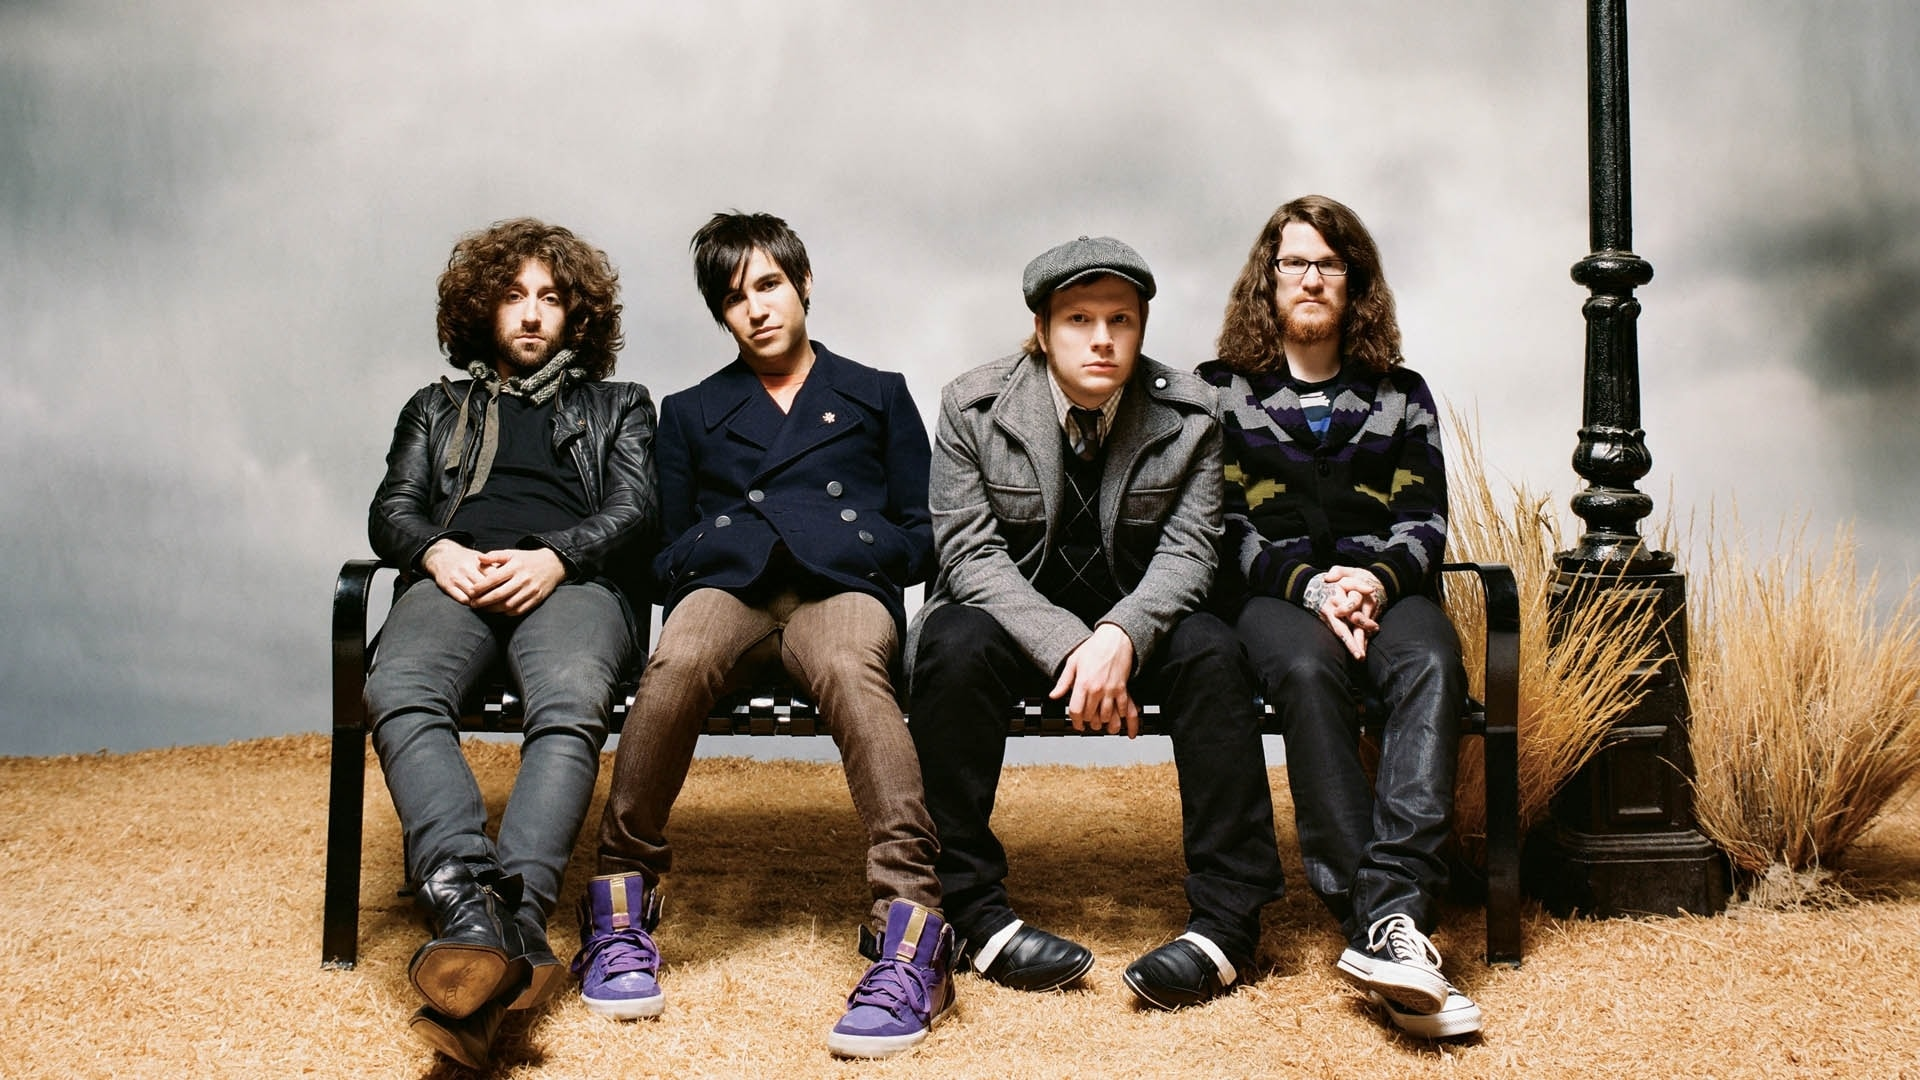 Fall Out Boy Hd Wallpapers 7wallpapers Net